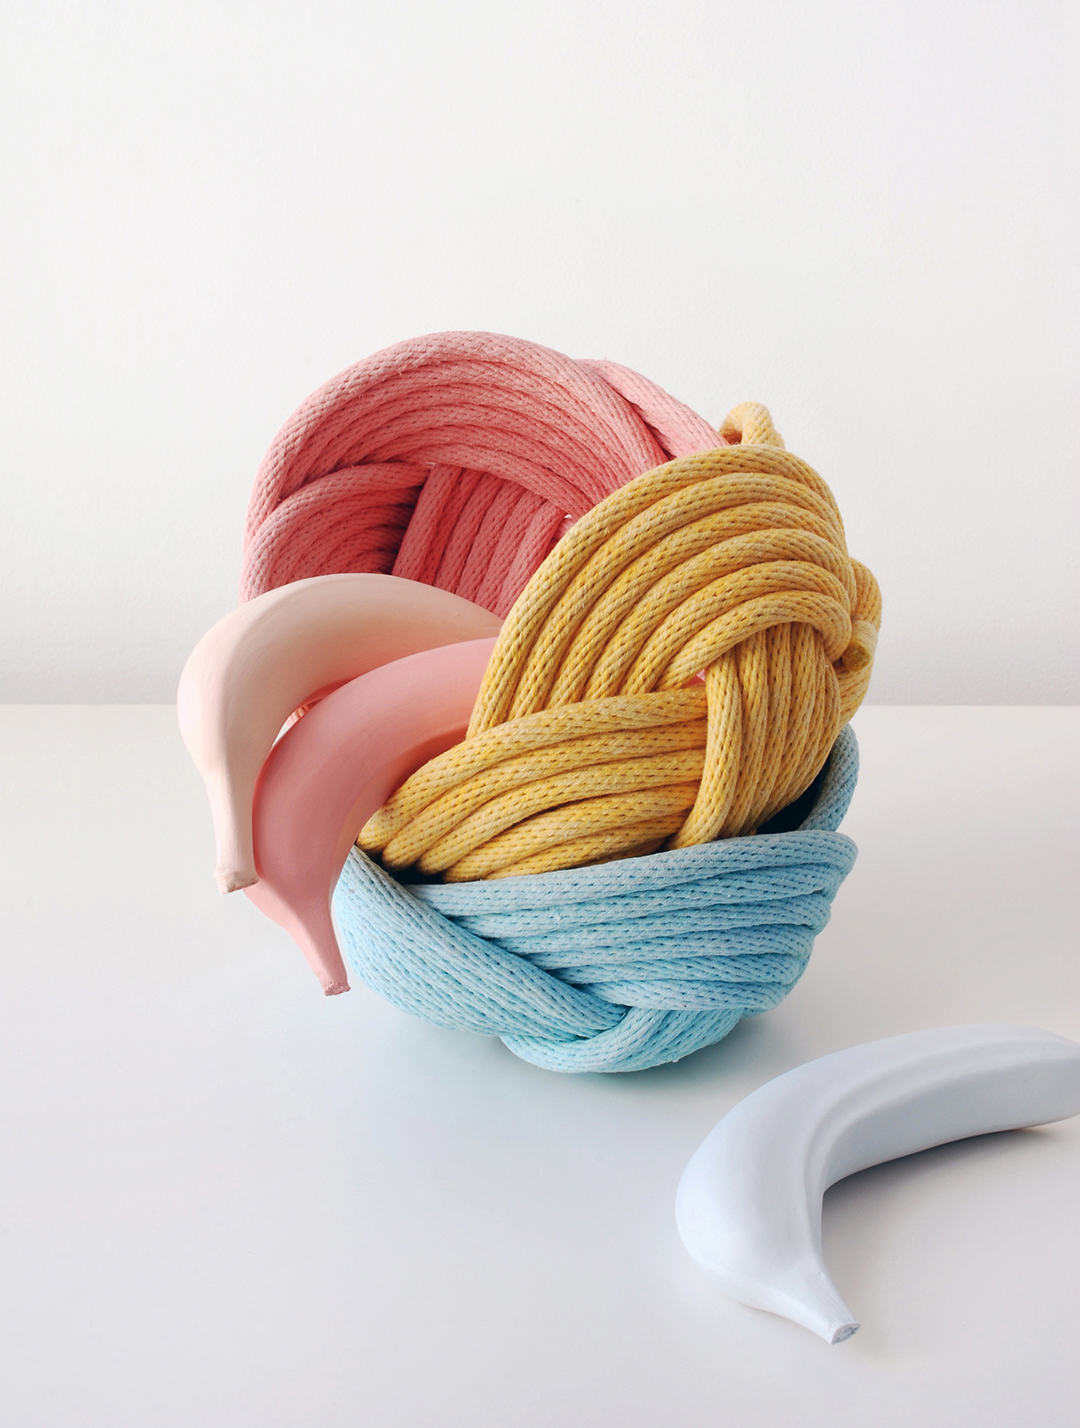 Weave bowls by Crayon Chick. Photo: Lisa Tilse